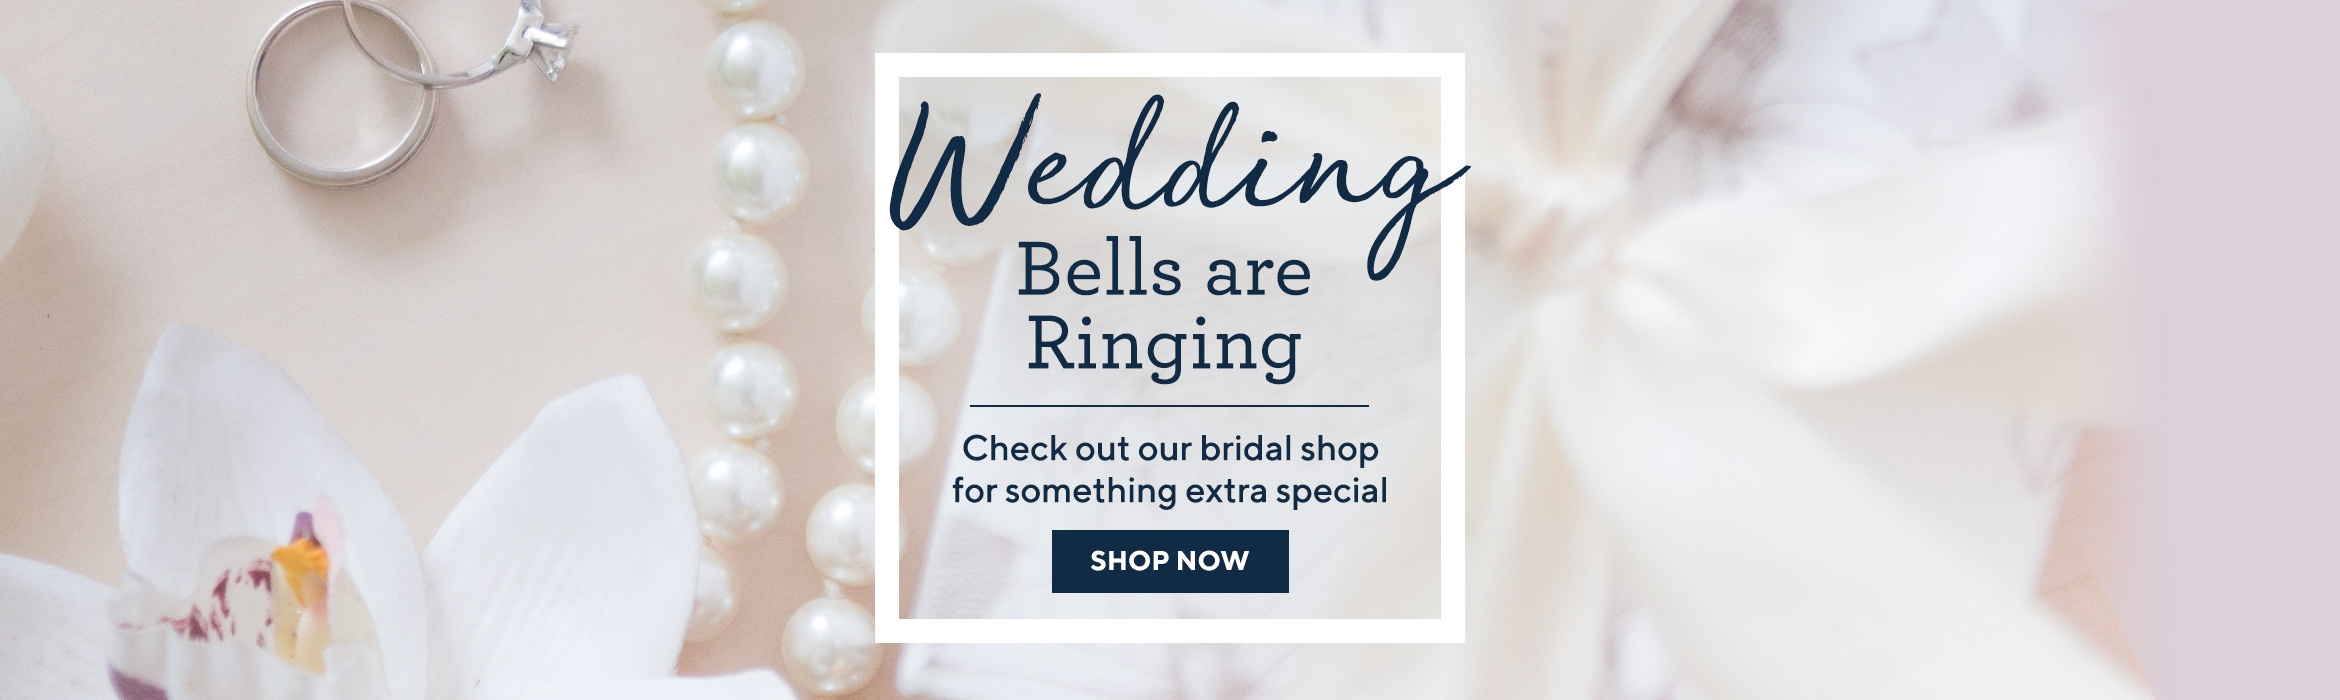 Wedding Bells Are Ringing - Check out our bridal shop for something extra special - SHOP NOW